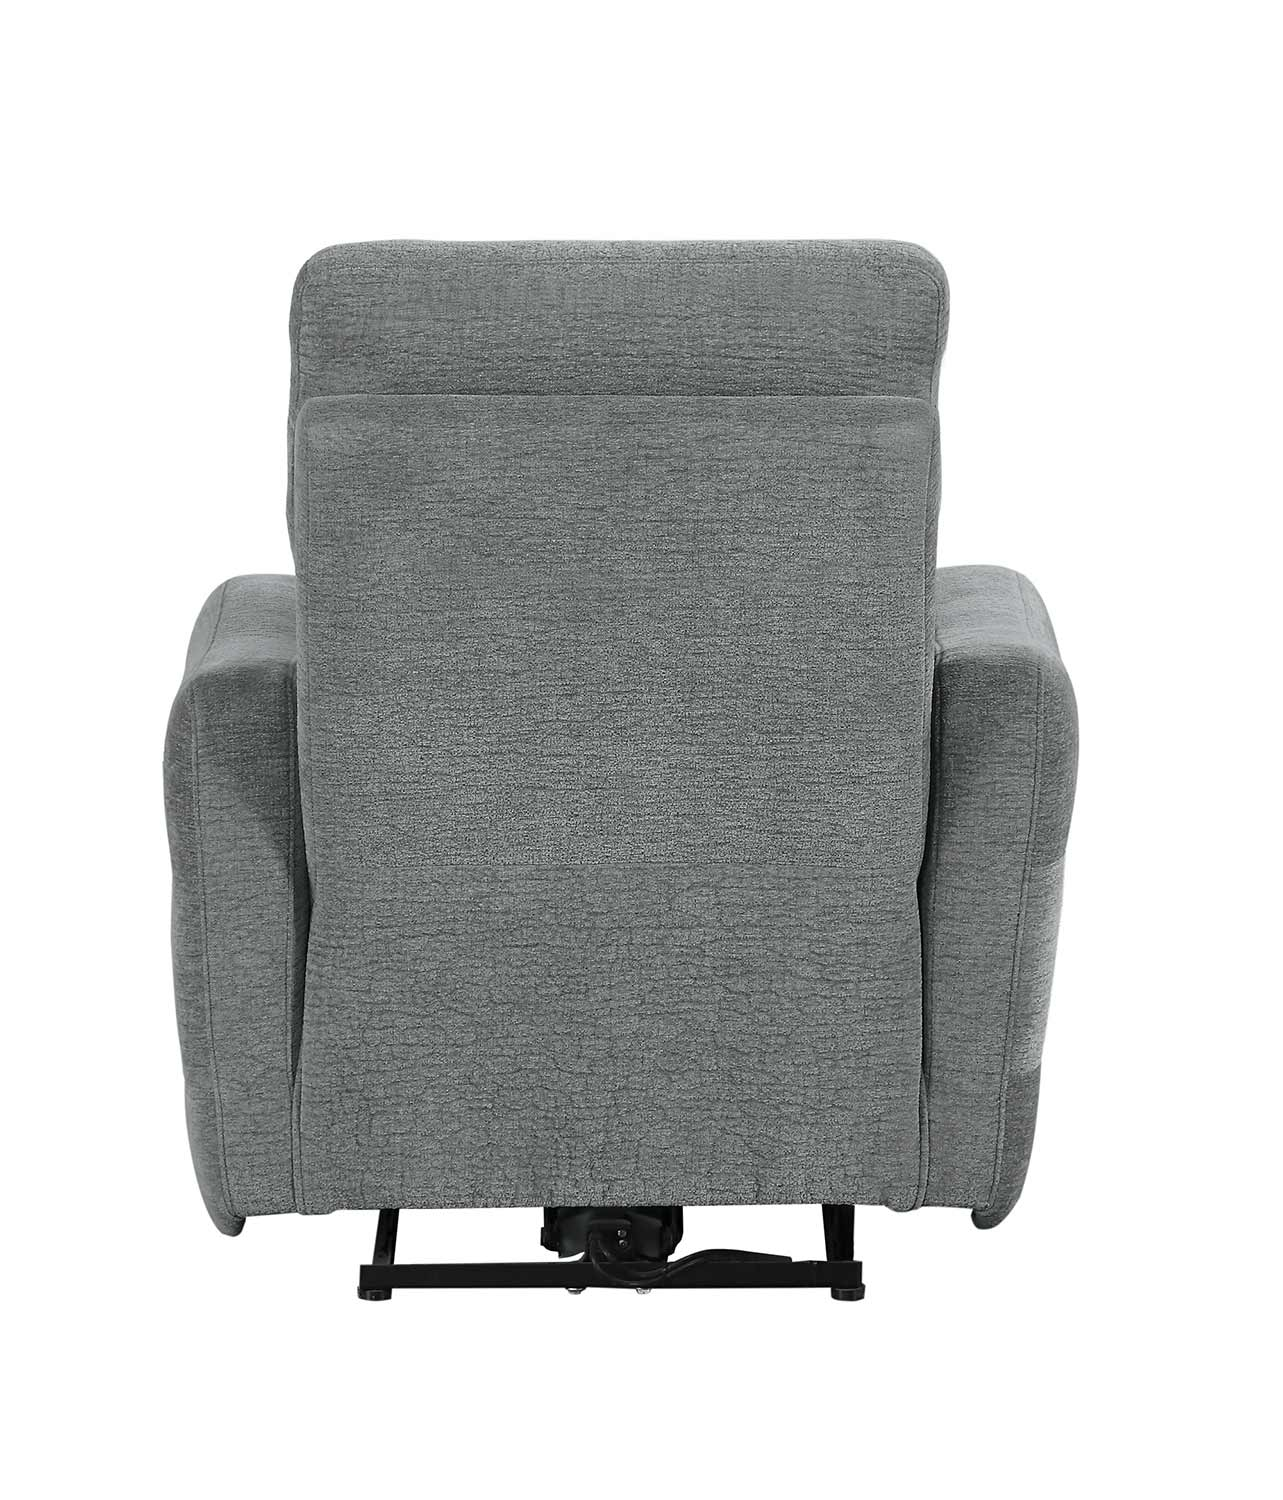 Homelegance Edition Power Lay Flat Reclining Chair with Power Headrest - Dove